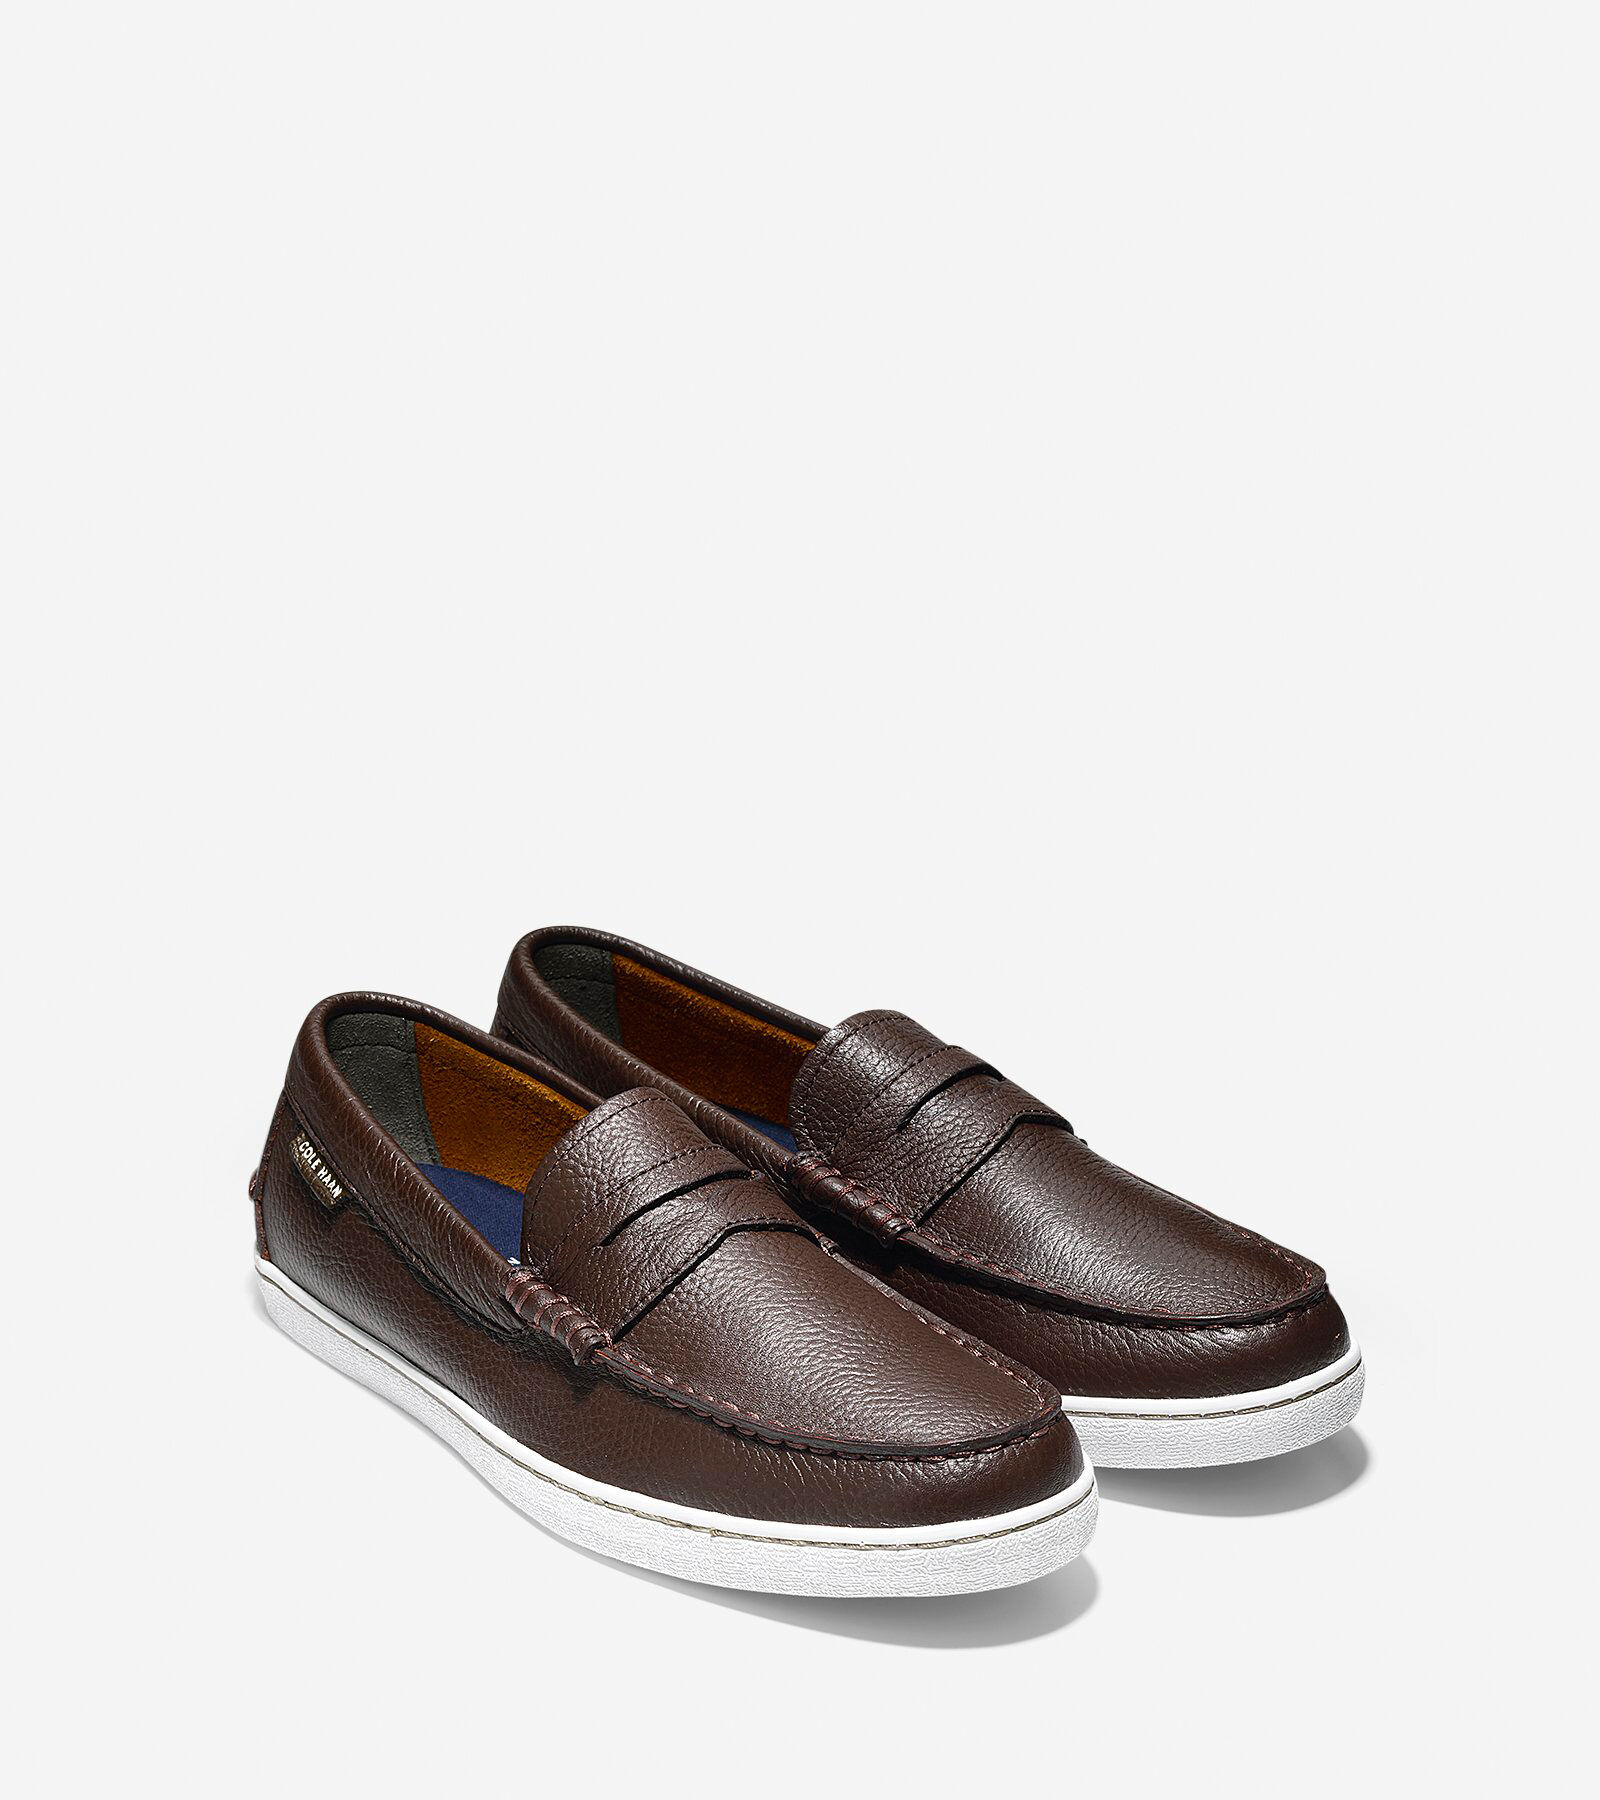 ... Men's Nantucket Loafer ...